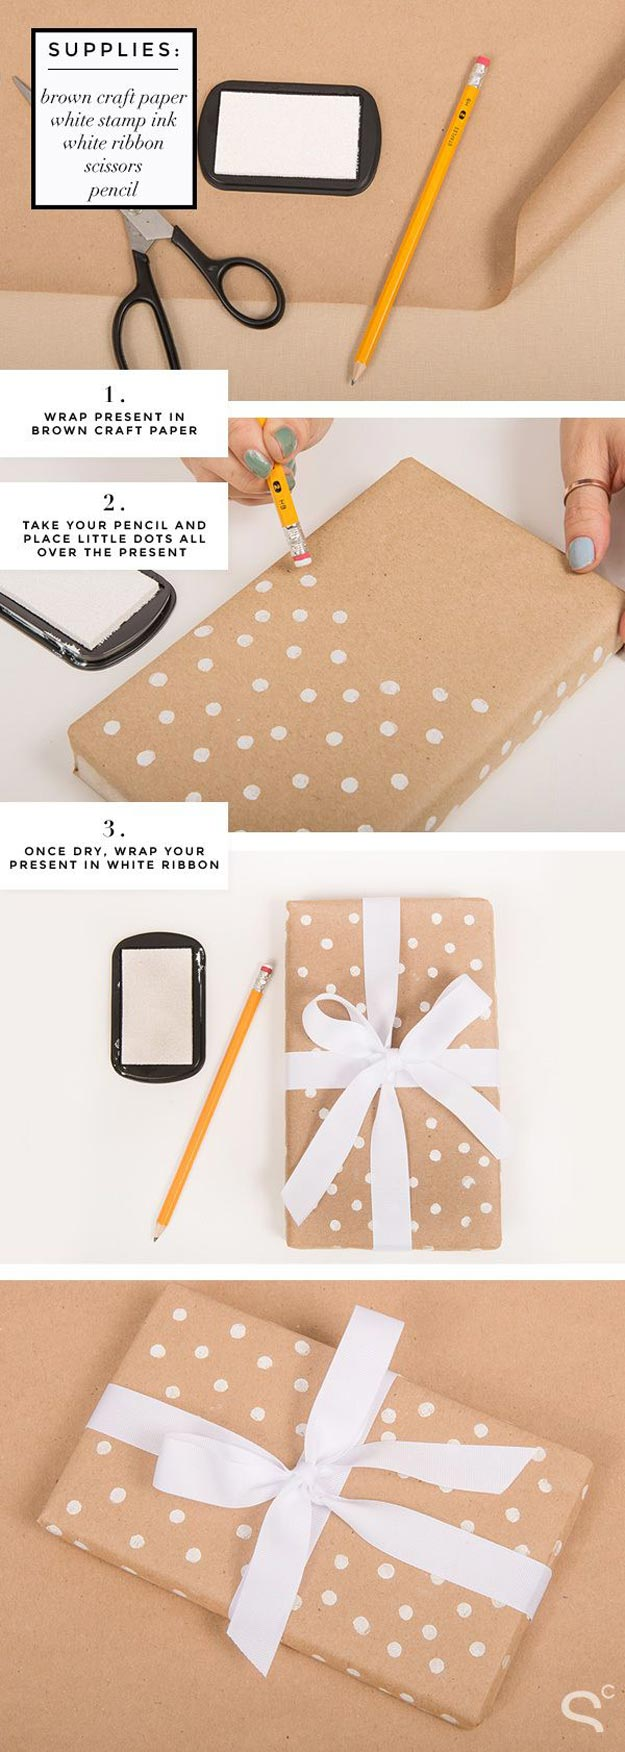 DIY Gift Wrapping Ideas - How To Wrap A Present - Tutorials, Cool Ideas and Instructions | Cute Gift Wrap Ideas for Christmas, Birthdays and Holidays | Tips for Bows and Creative Wrapping Papers | Polka-Dot-Gift-Wrap #gifts #diys